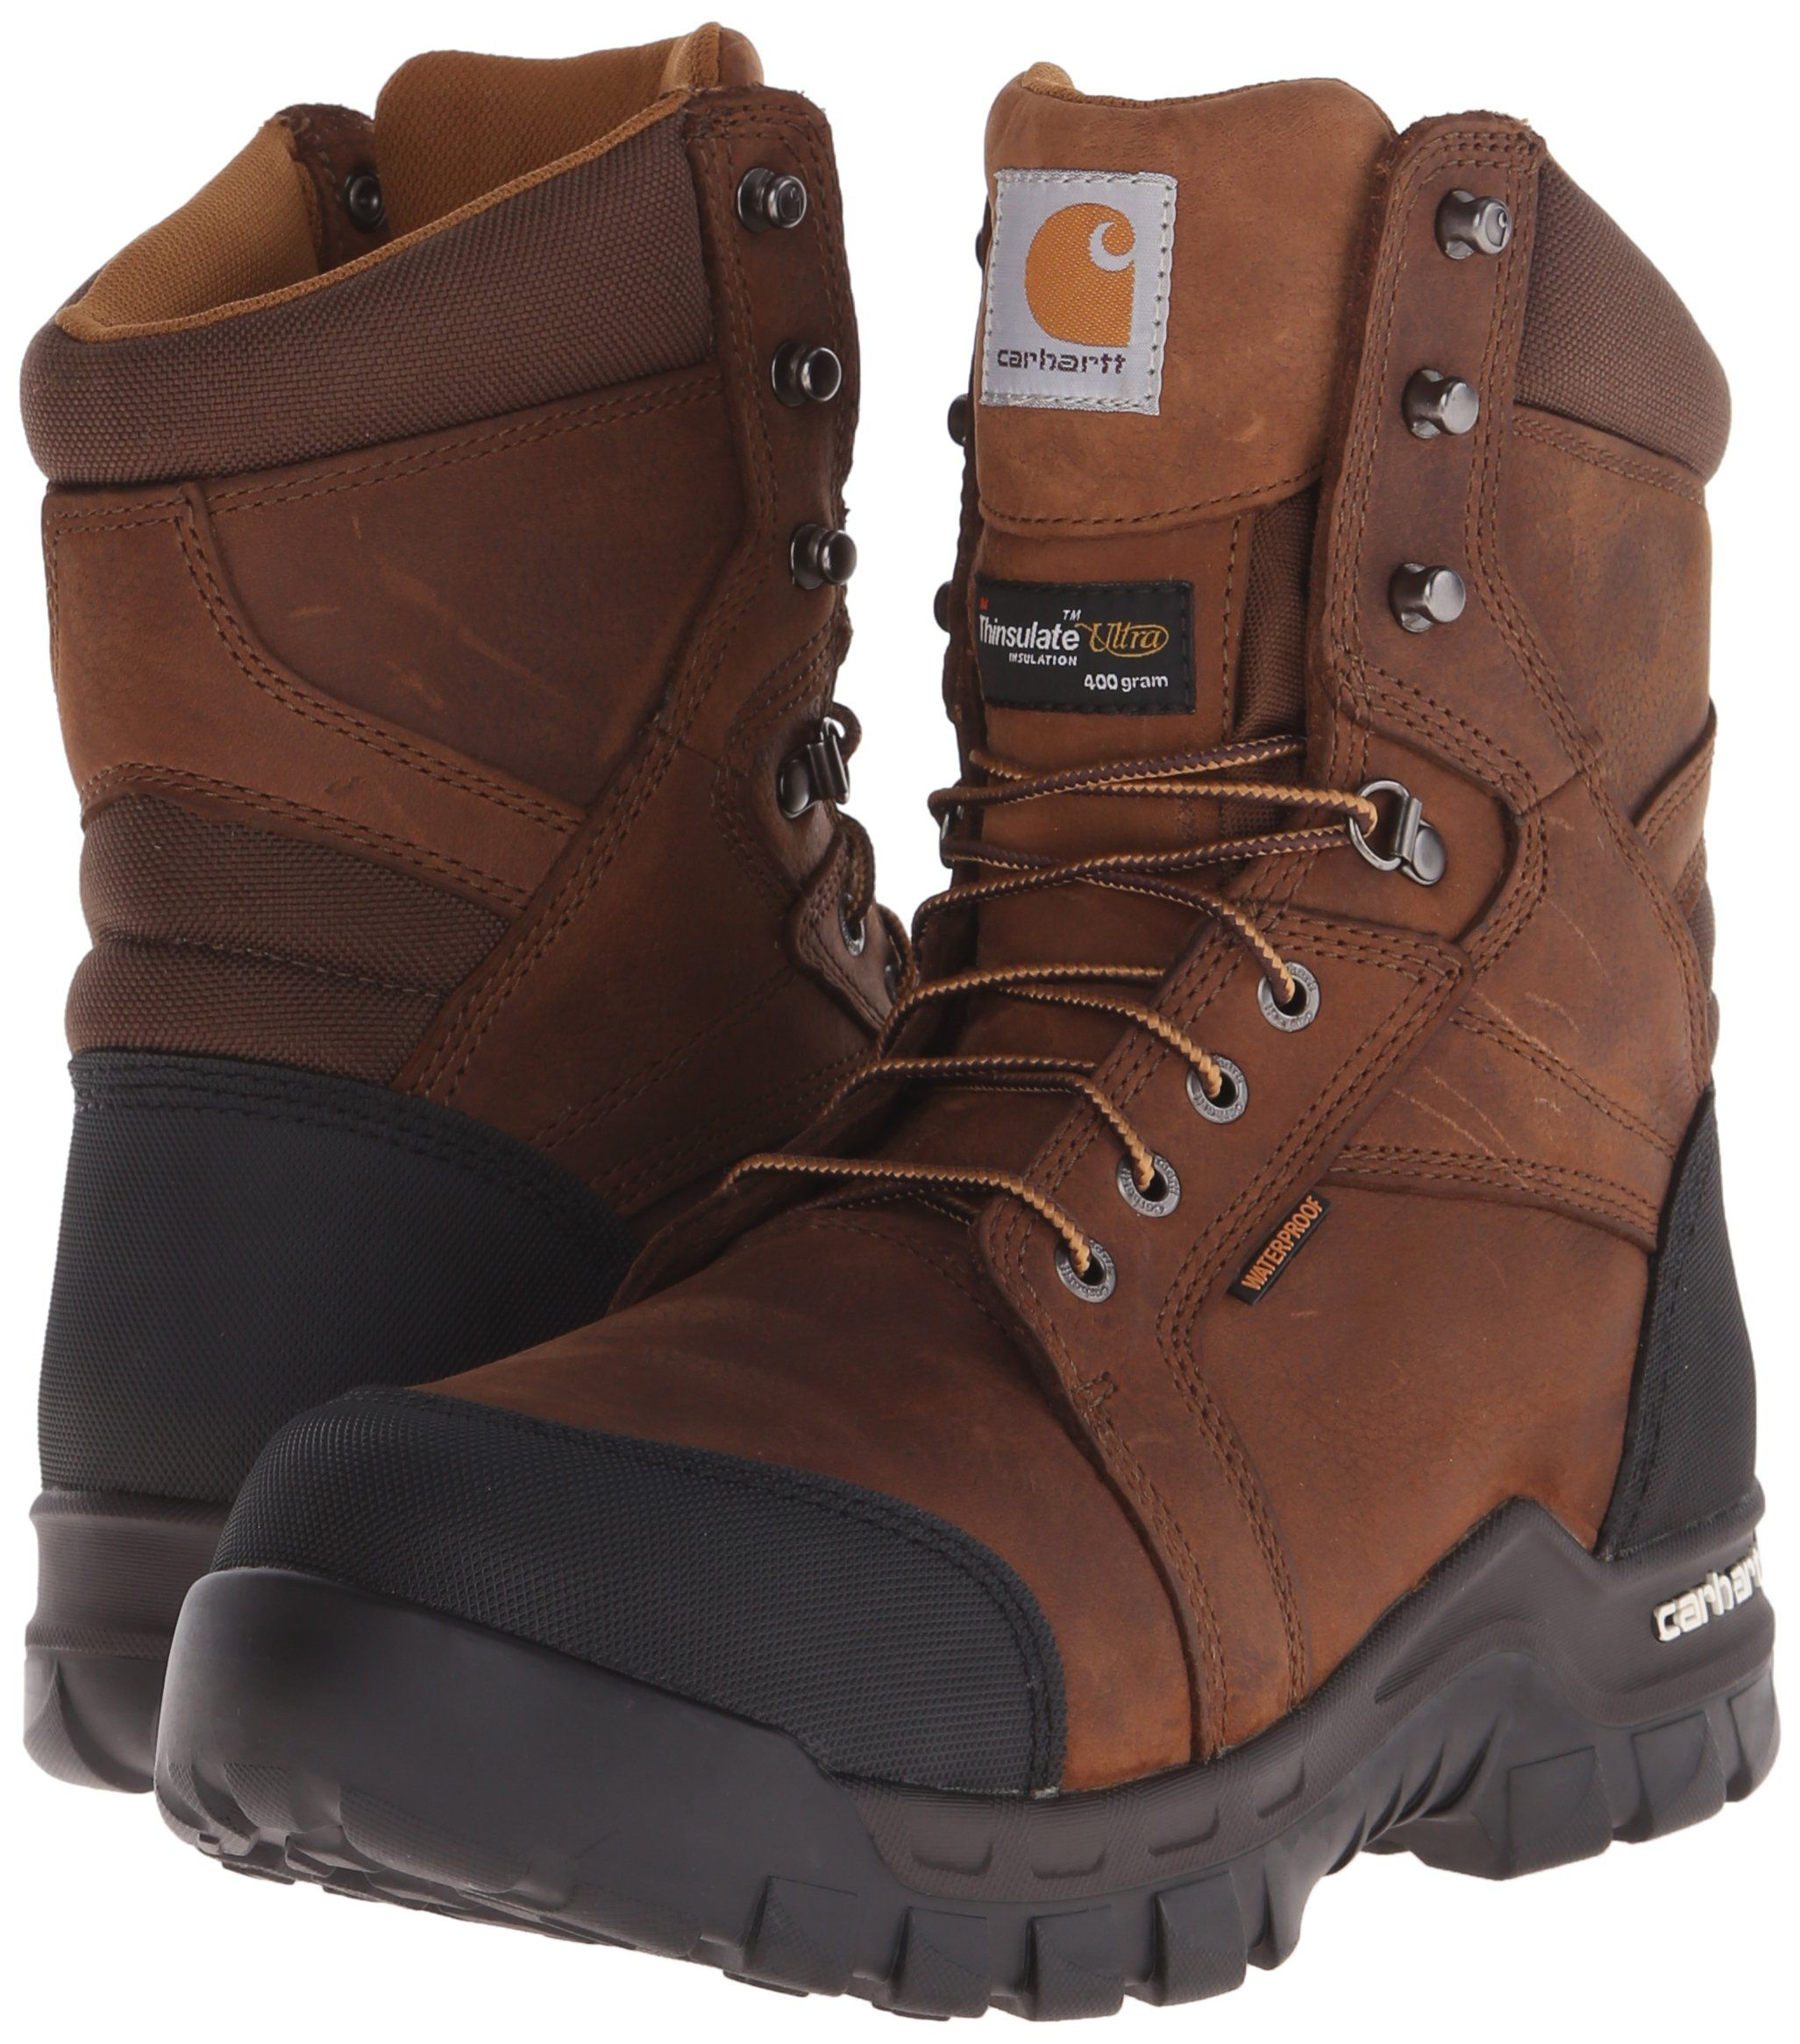 Carhartt Mens 8 Rugged Flex Insulated Waterproof Breathable Safety Toe Leather Work Boot Cmf8389 Brown 8 5 Work Boots Men Leather Work Boots Boots